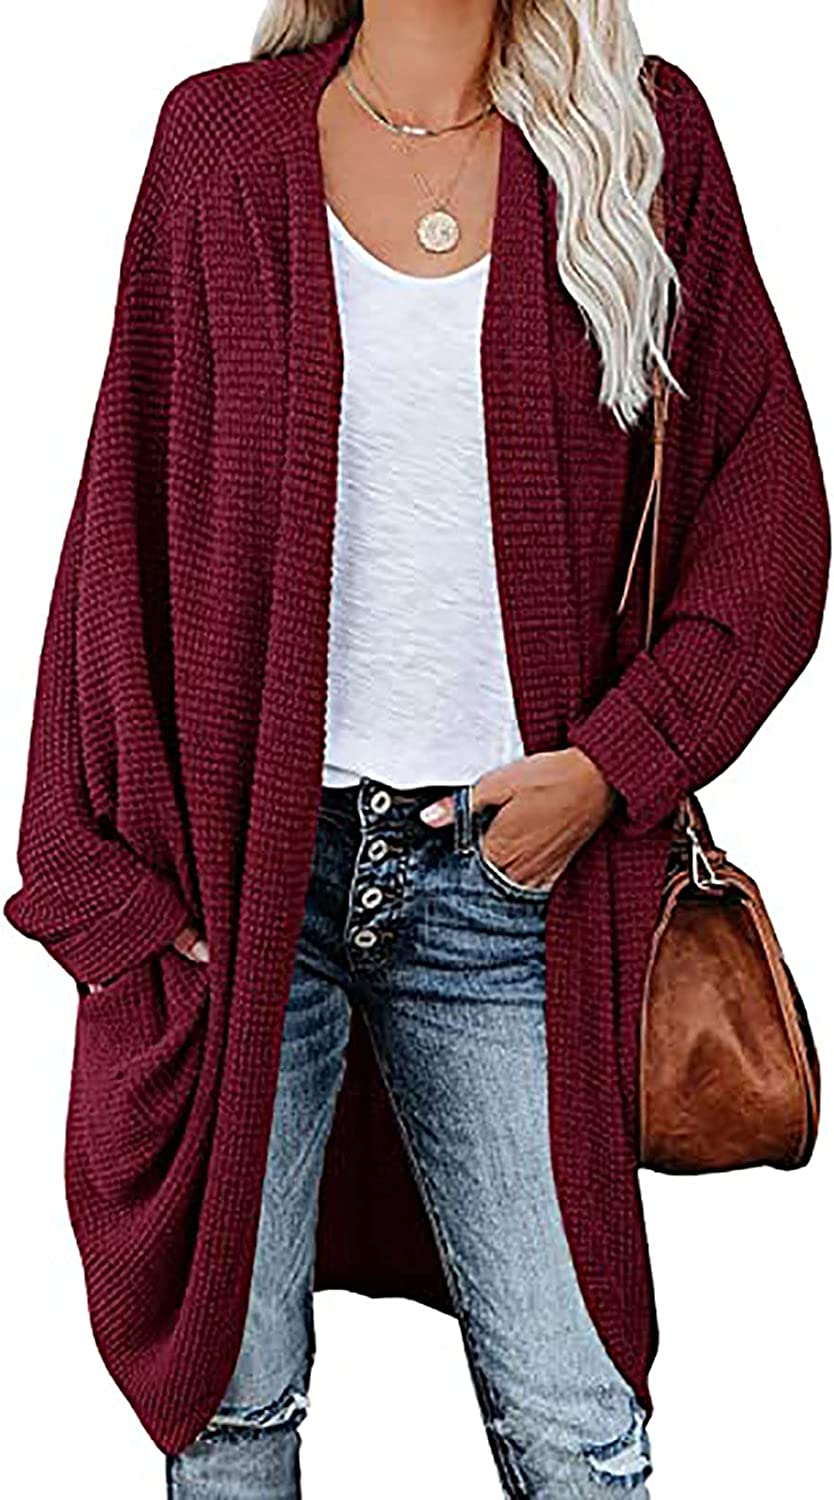 Knitted Cardigan for Women, Casual Loose Long Sleeve Long Cardigan Sweaters Oversized Open Front Tops Blouse Coat